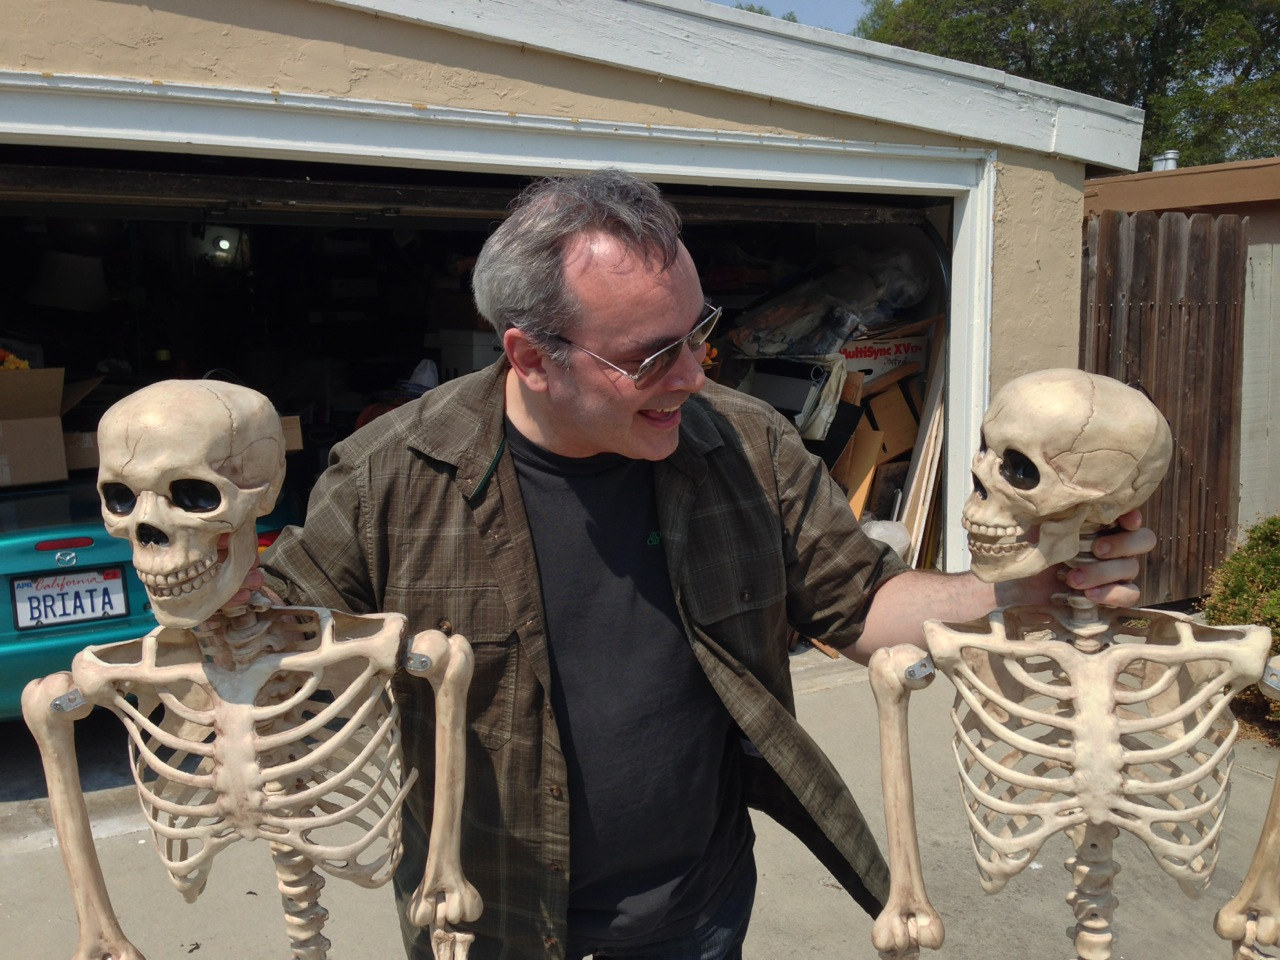 Ghoulish Glen consulting the skeletons